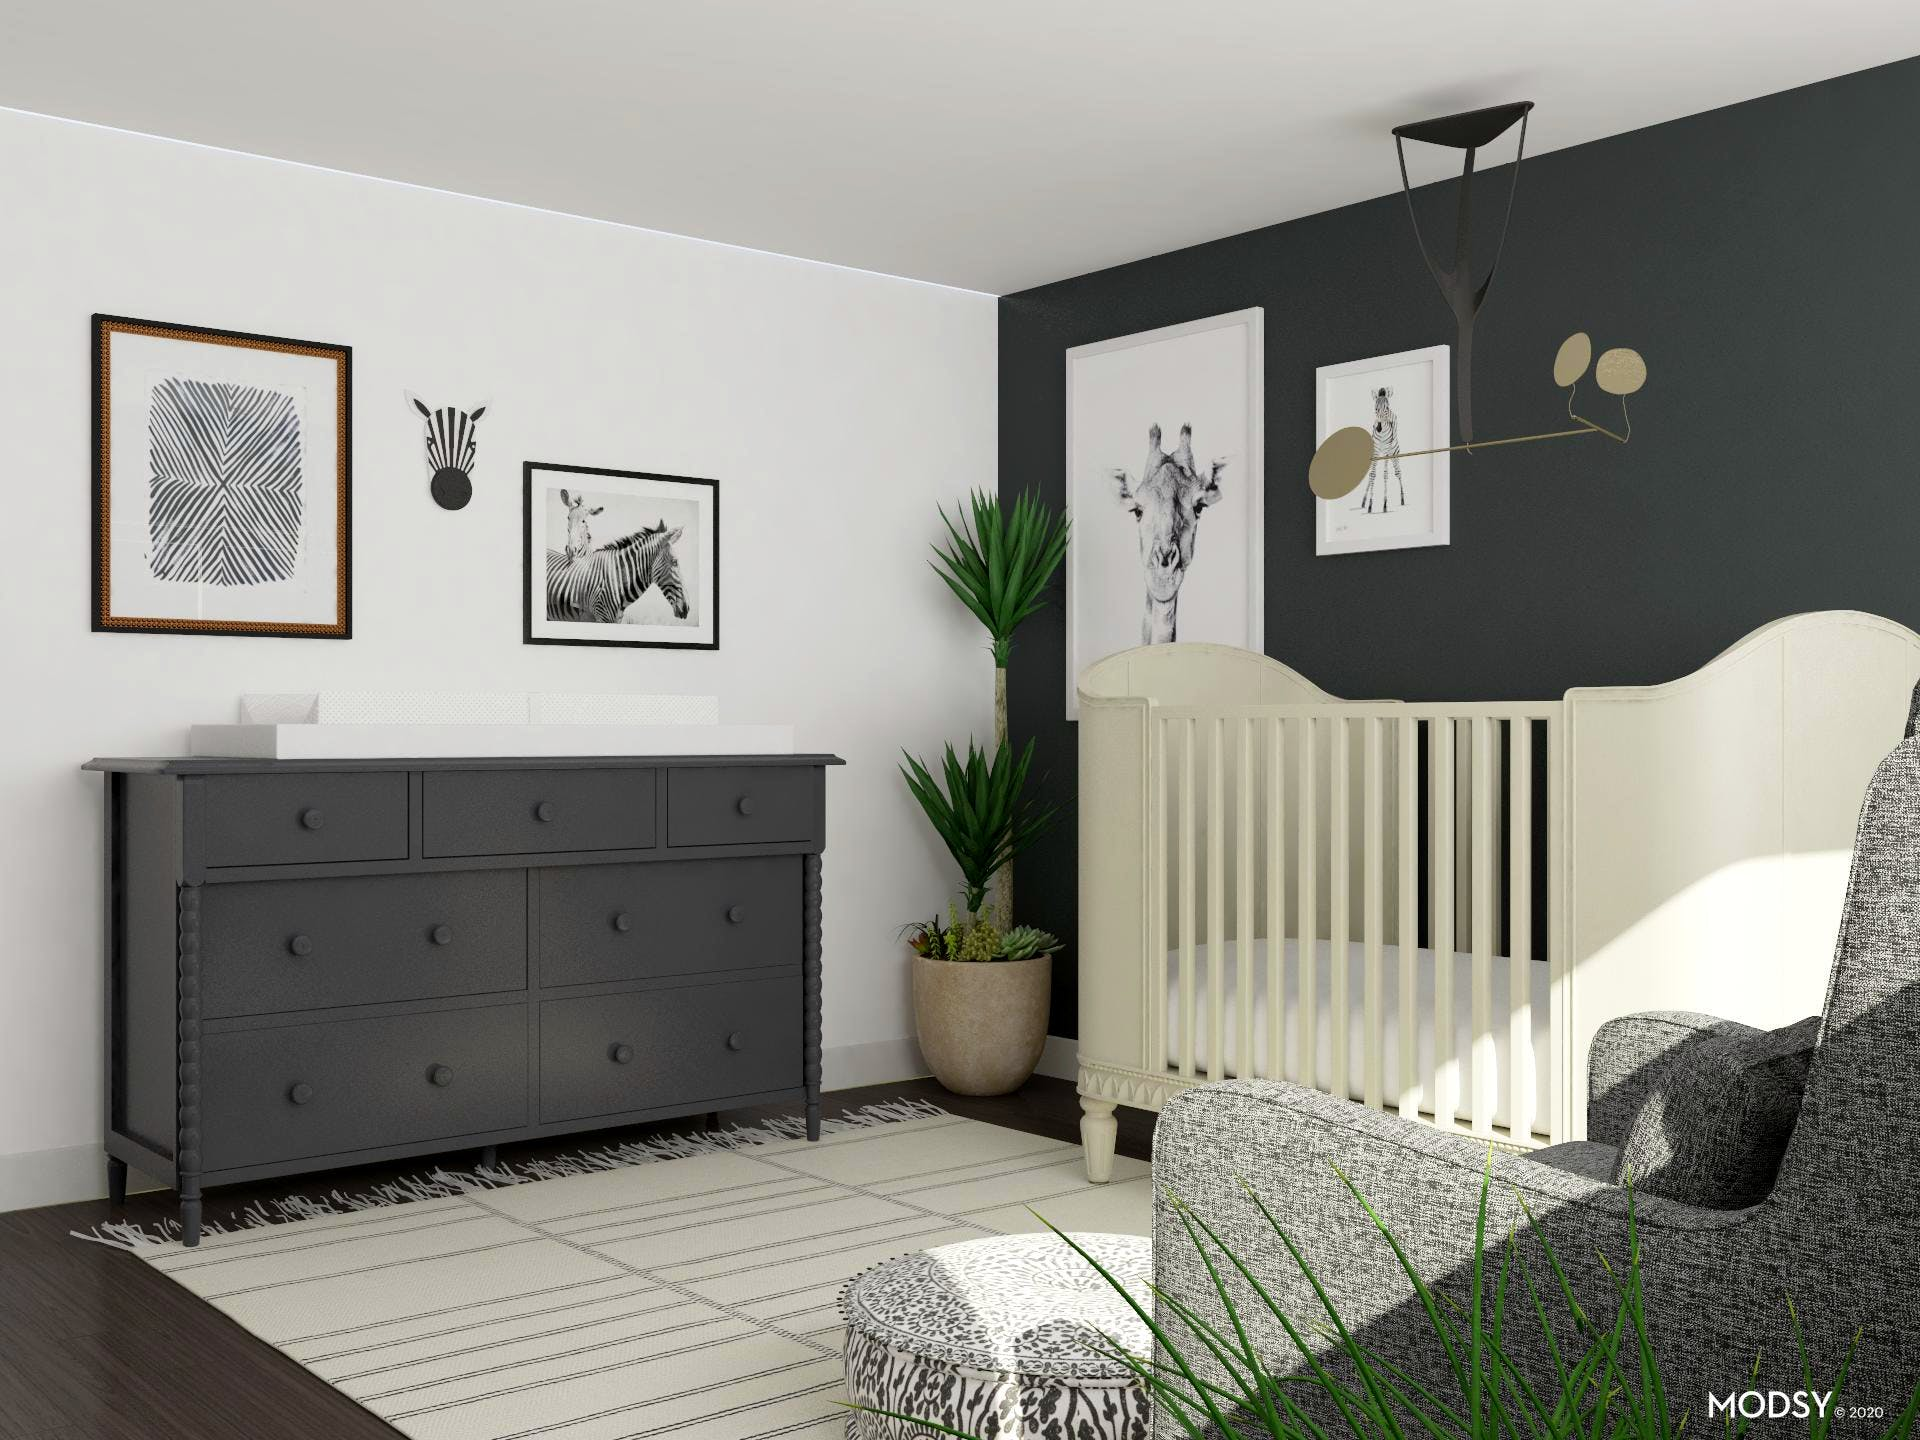 Storage and Functionality in Mid-century Nursery